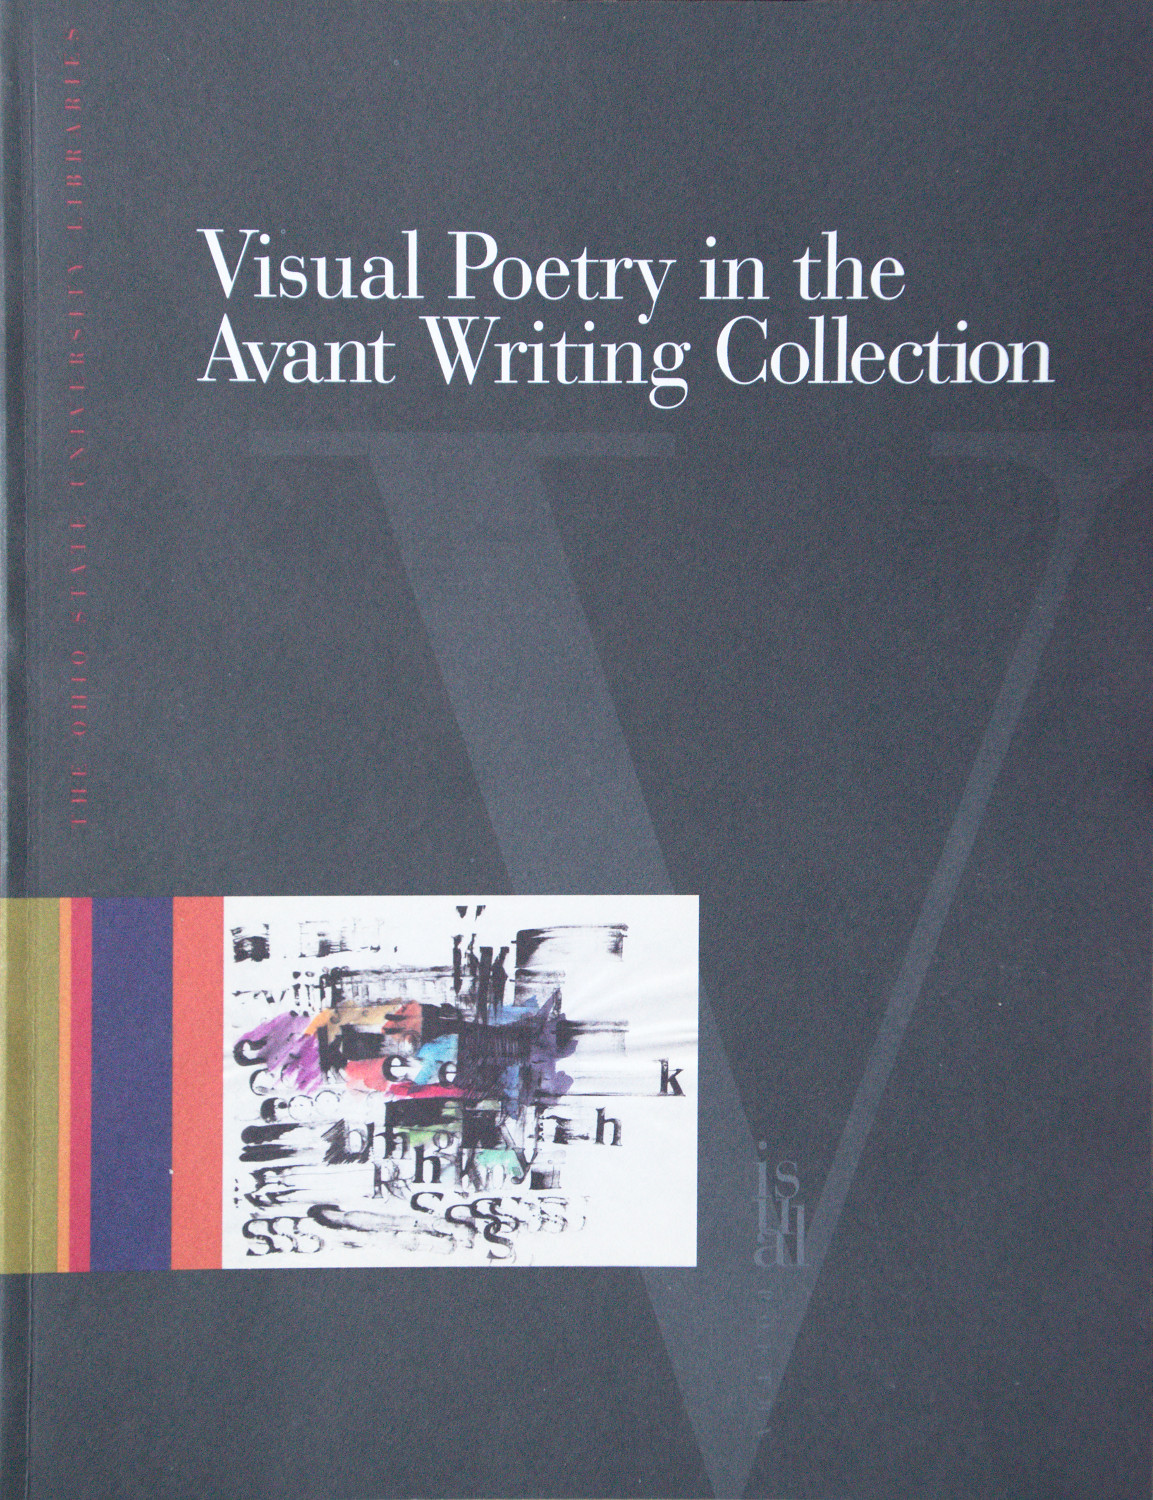 Visual Poetry in the Avant Writing Collection , ed. John M. Bennett